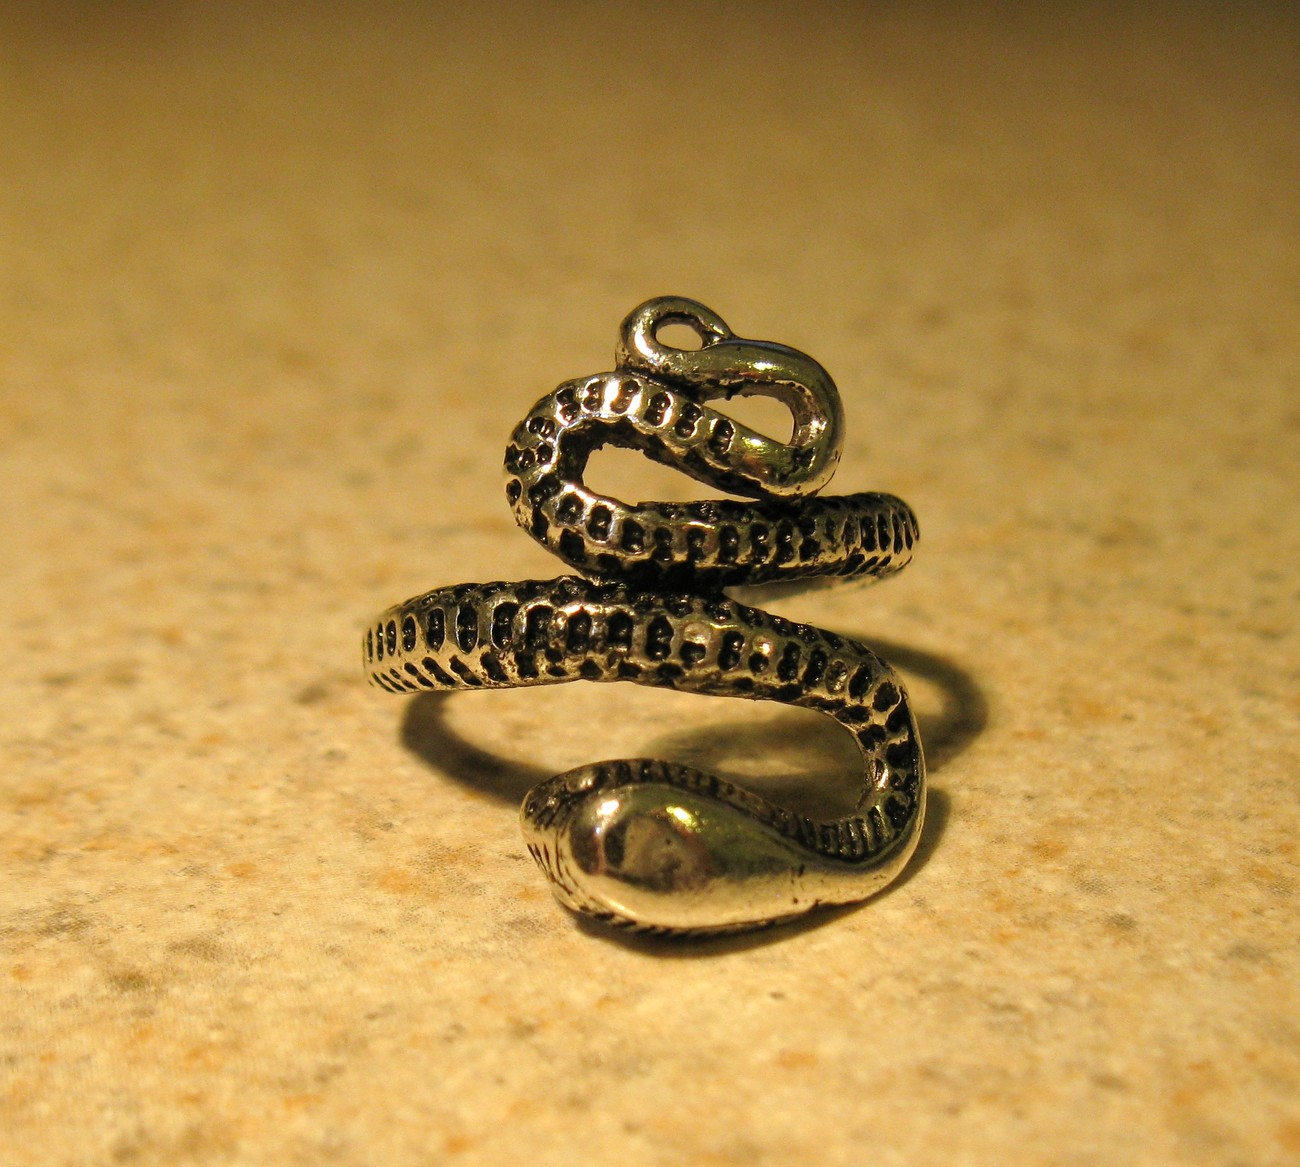 RING MEN WOMEN UNISEX STAINLESS STEEL SILVER SNAKE SIZE 8 #1